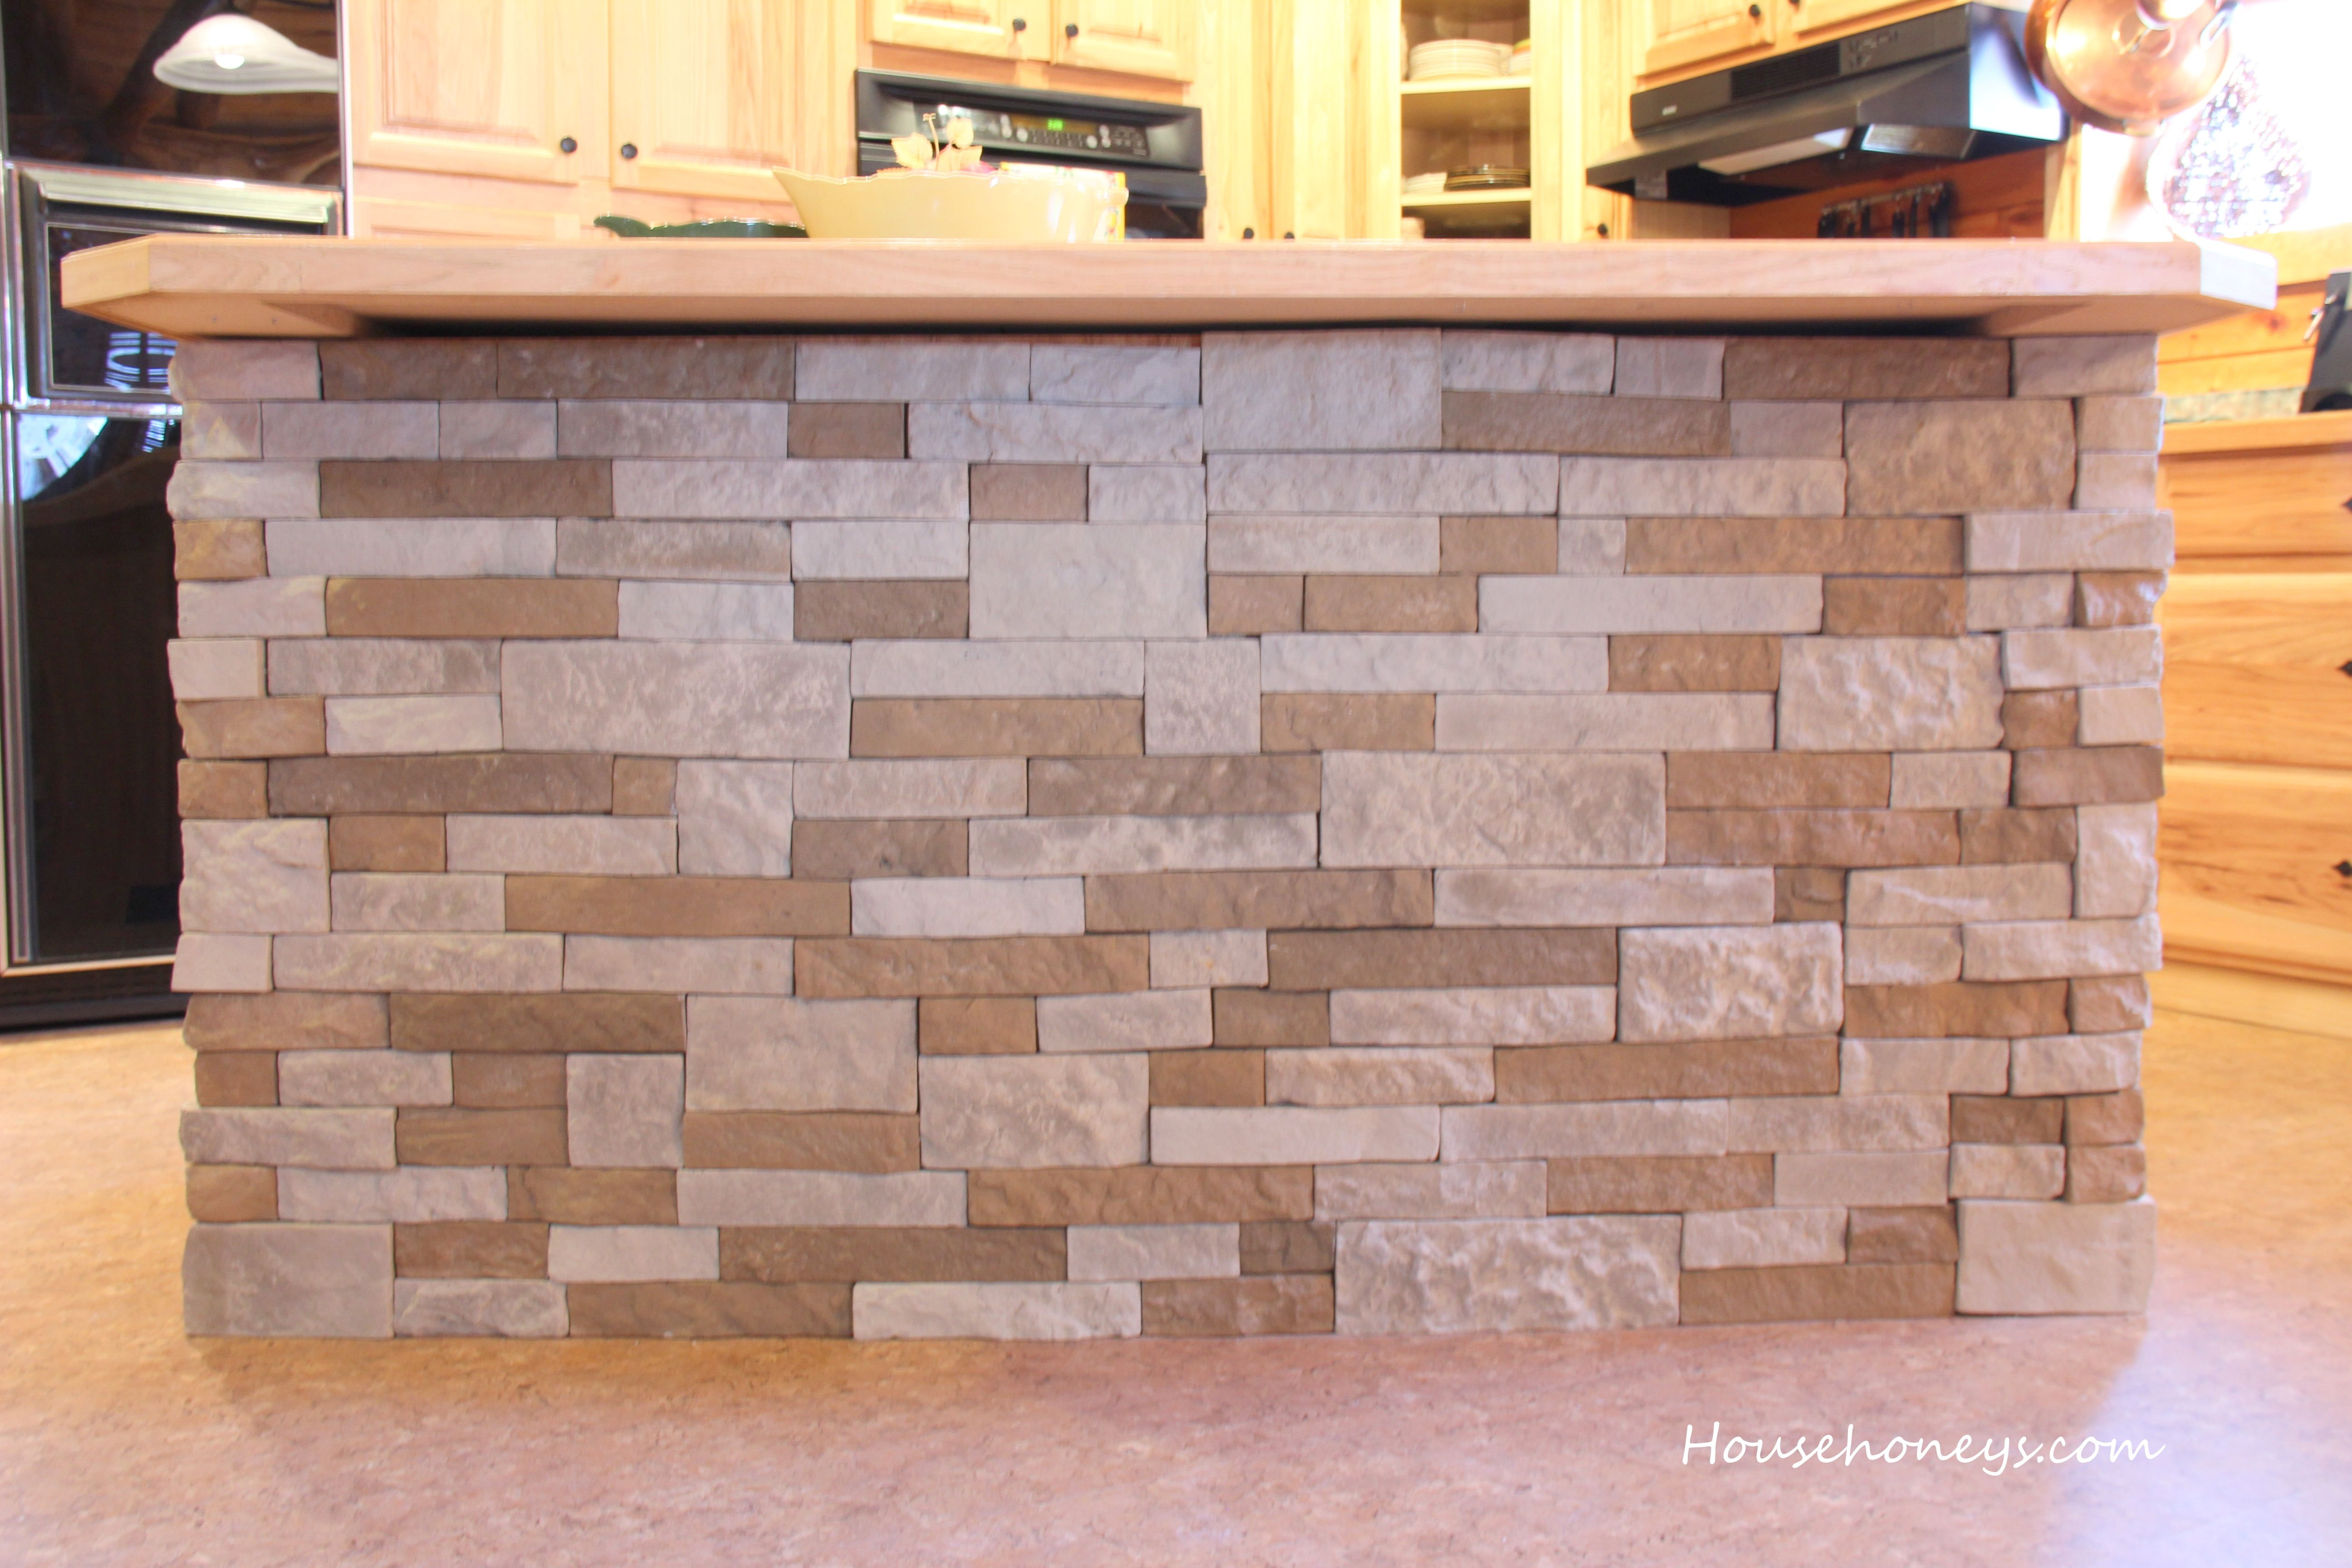 lowes kitchen remodel reviews We just did this exact airstone on our kitchen bar Much less expensive and an eaiser DIY than other options